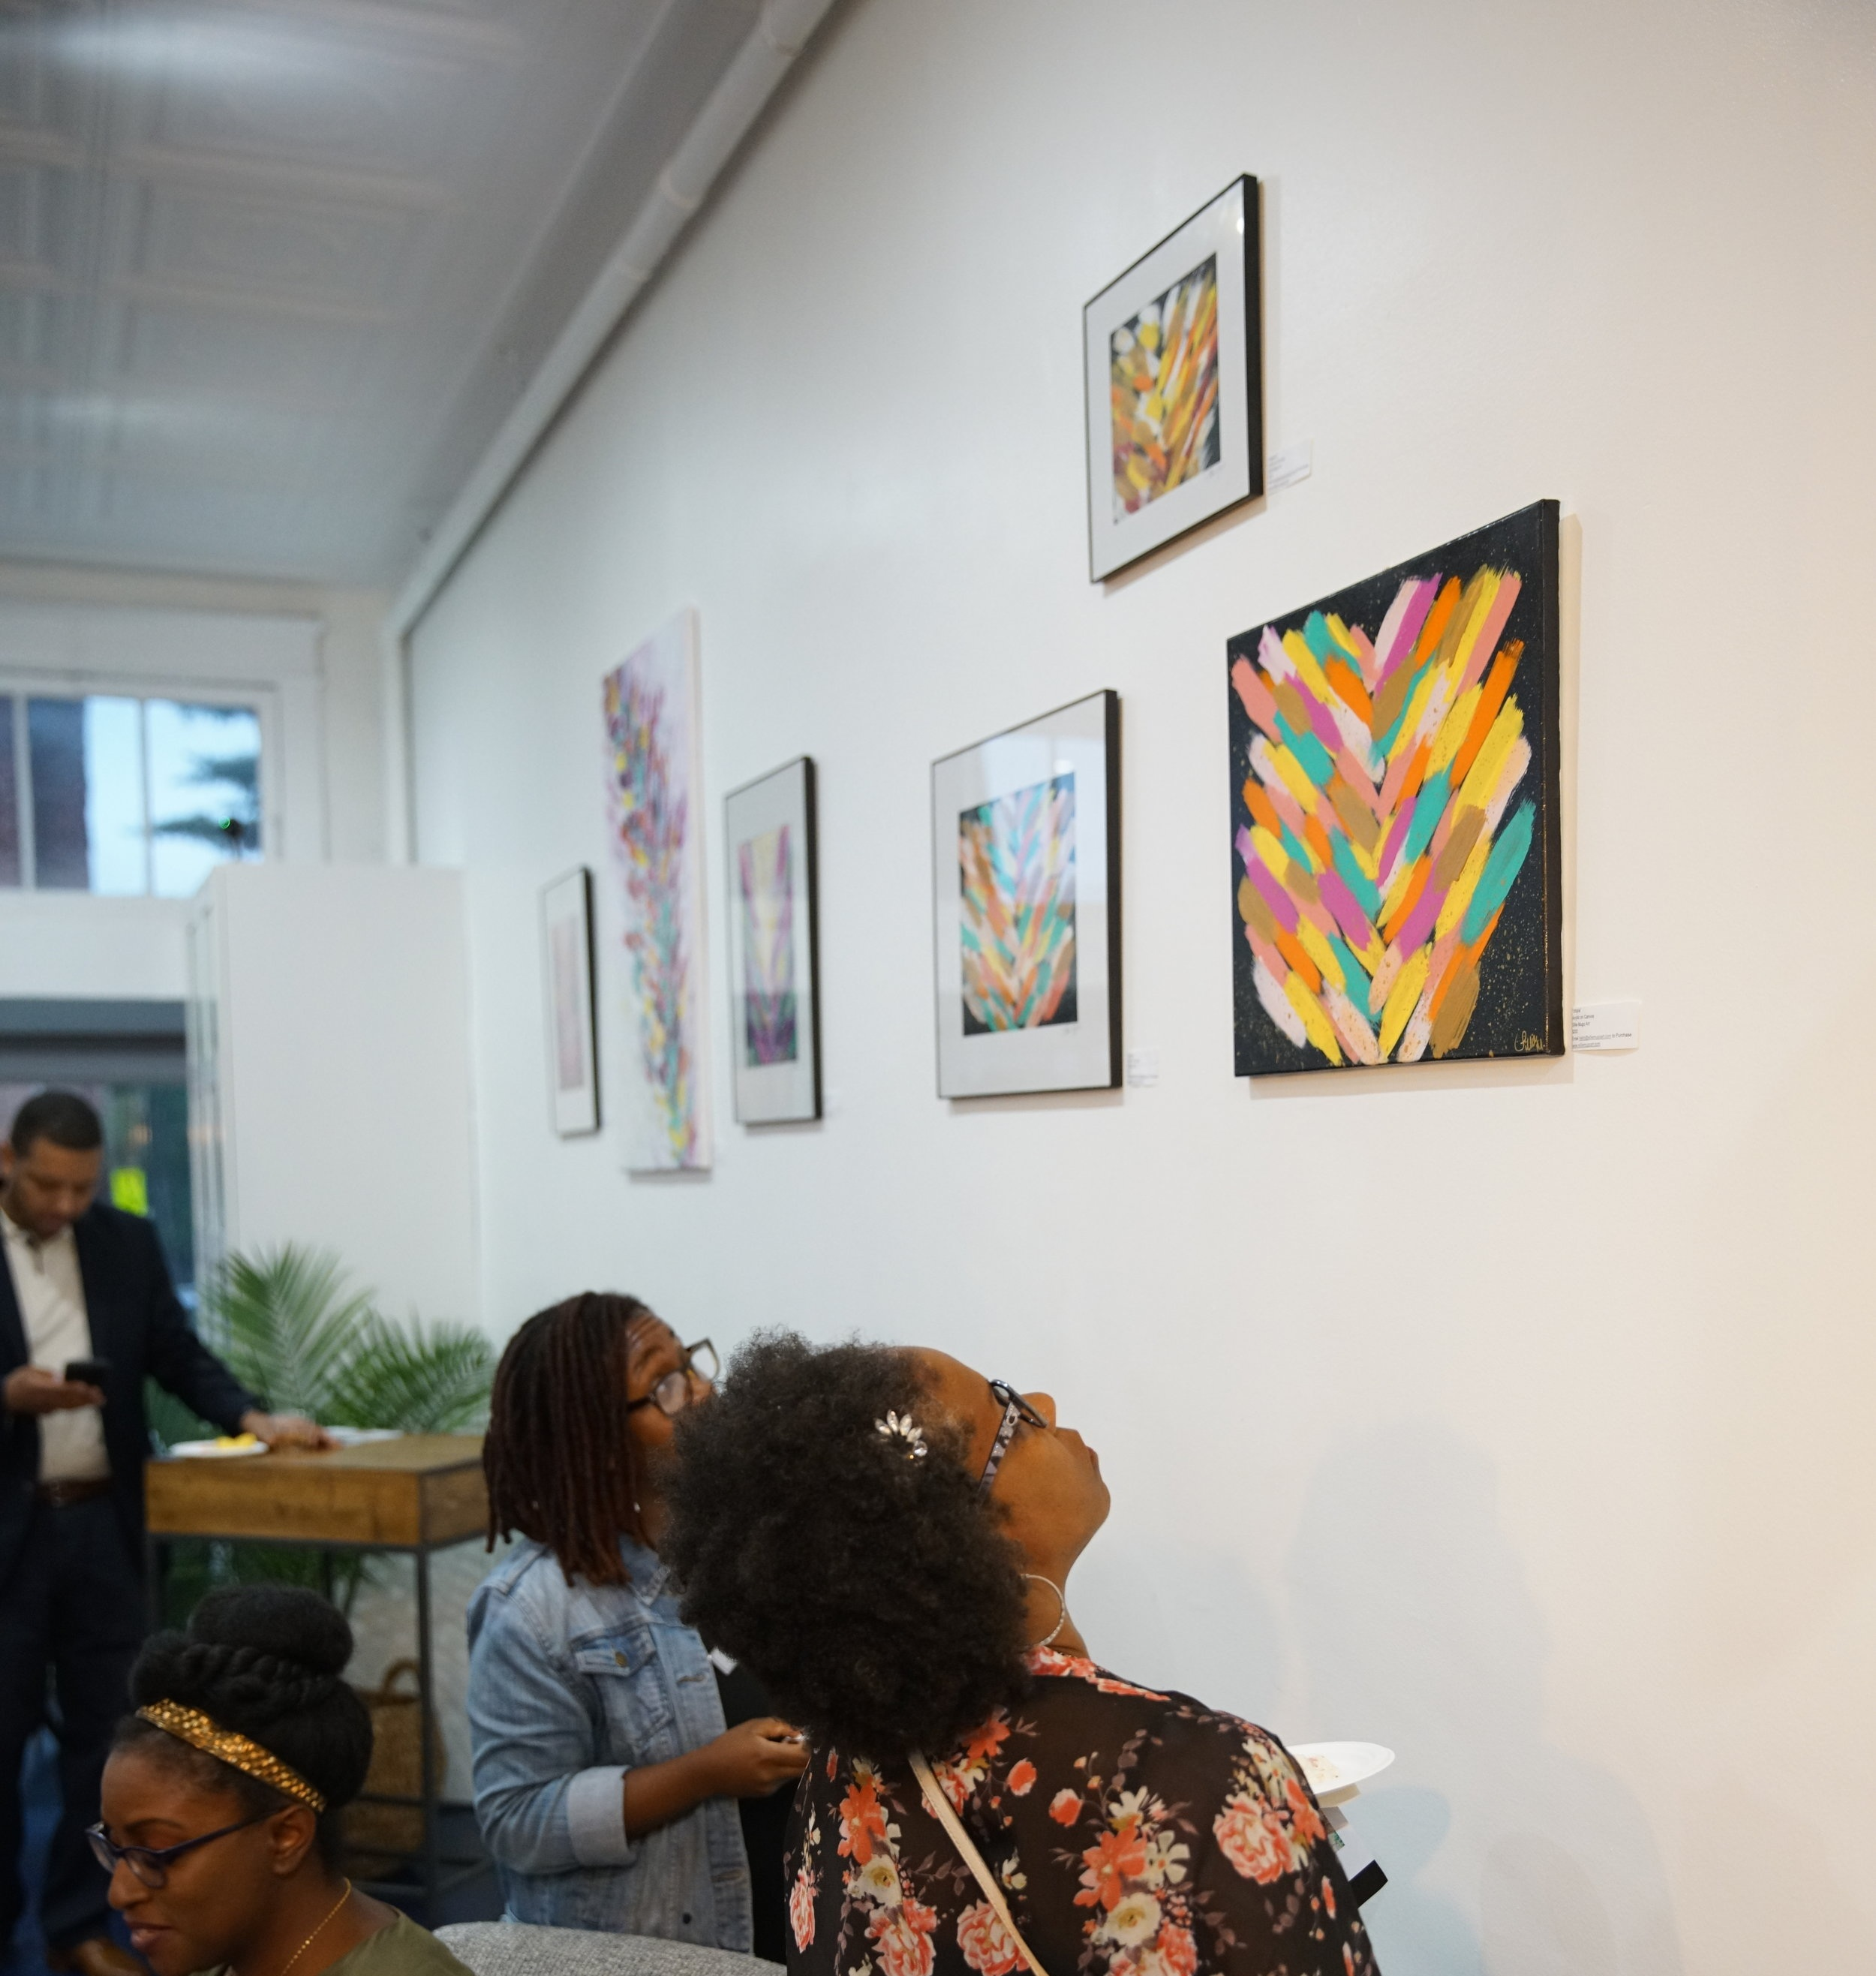 #1 Sillie Mugo's Exhibit - This summer, we kicked off our art exhibit series. Our walls were intentionally kept bare so that we could eventually display the beautiful work of local artists. Sillie Mugo was our first artist, which kicked off with a debut exhibit opening, libations and great conversation. Bloggers, photographers, artists, and other creatives met up and brought so much great energy into the space! Check out her work here.